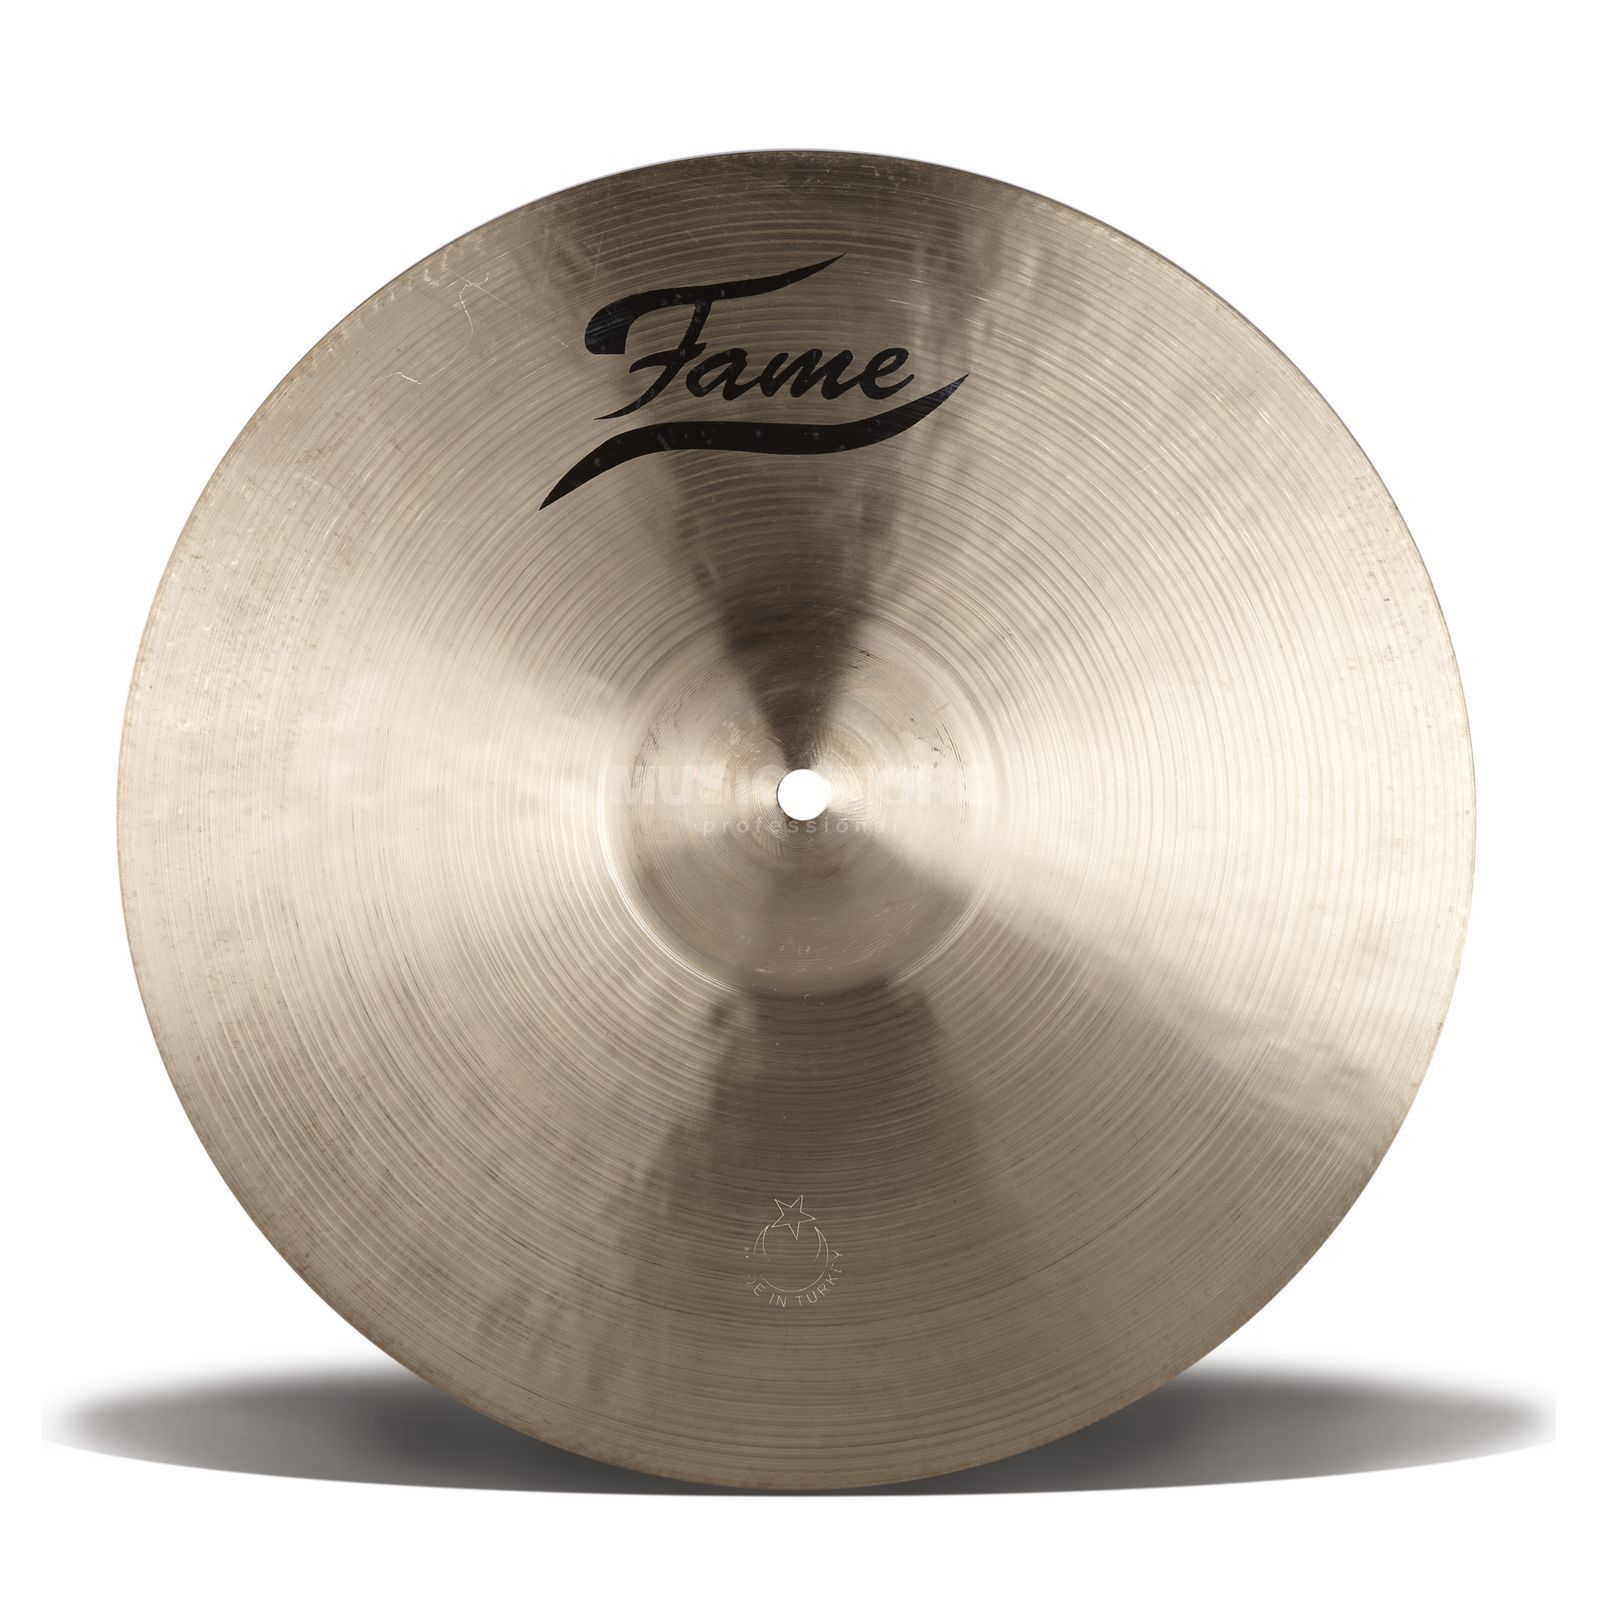 "Fame Masters B20 Thin HiHat 14"", Natural Finish Produktbillede"